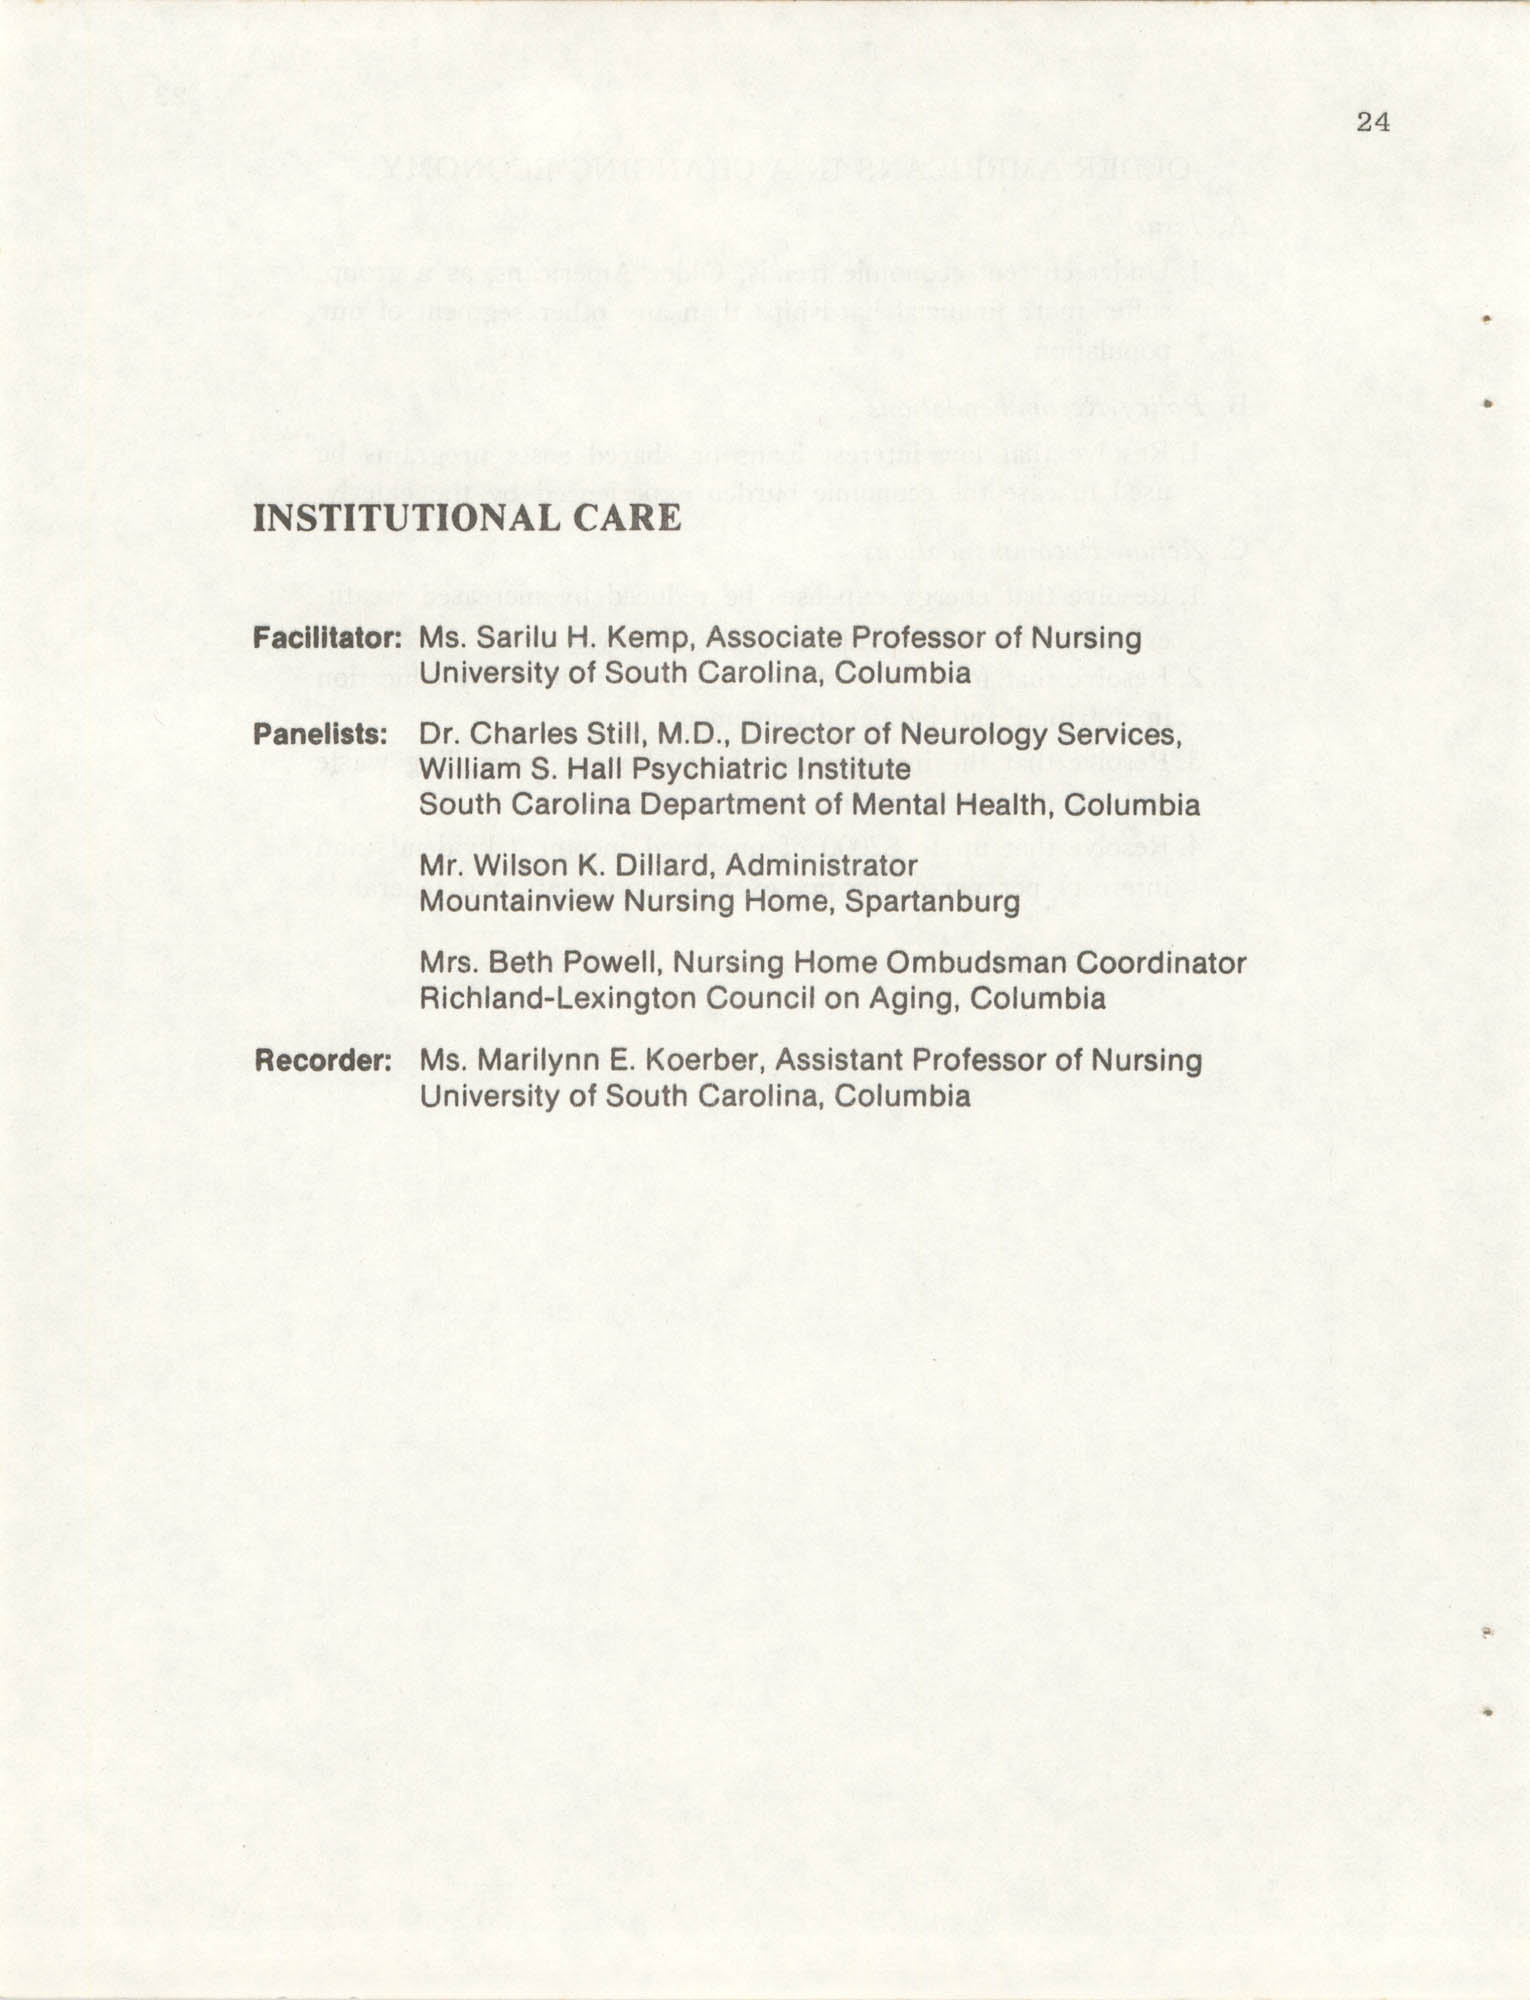 South Carolina Governor's White House Conference on Aging Proceedings, 1981, Page 24